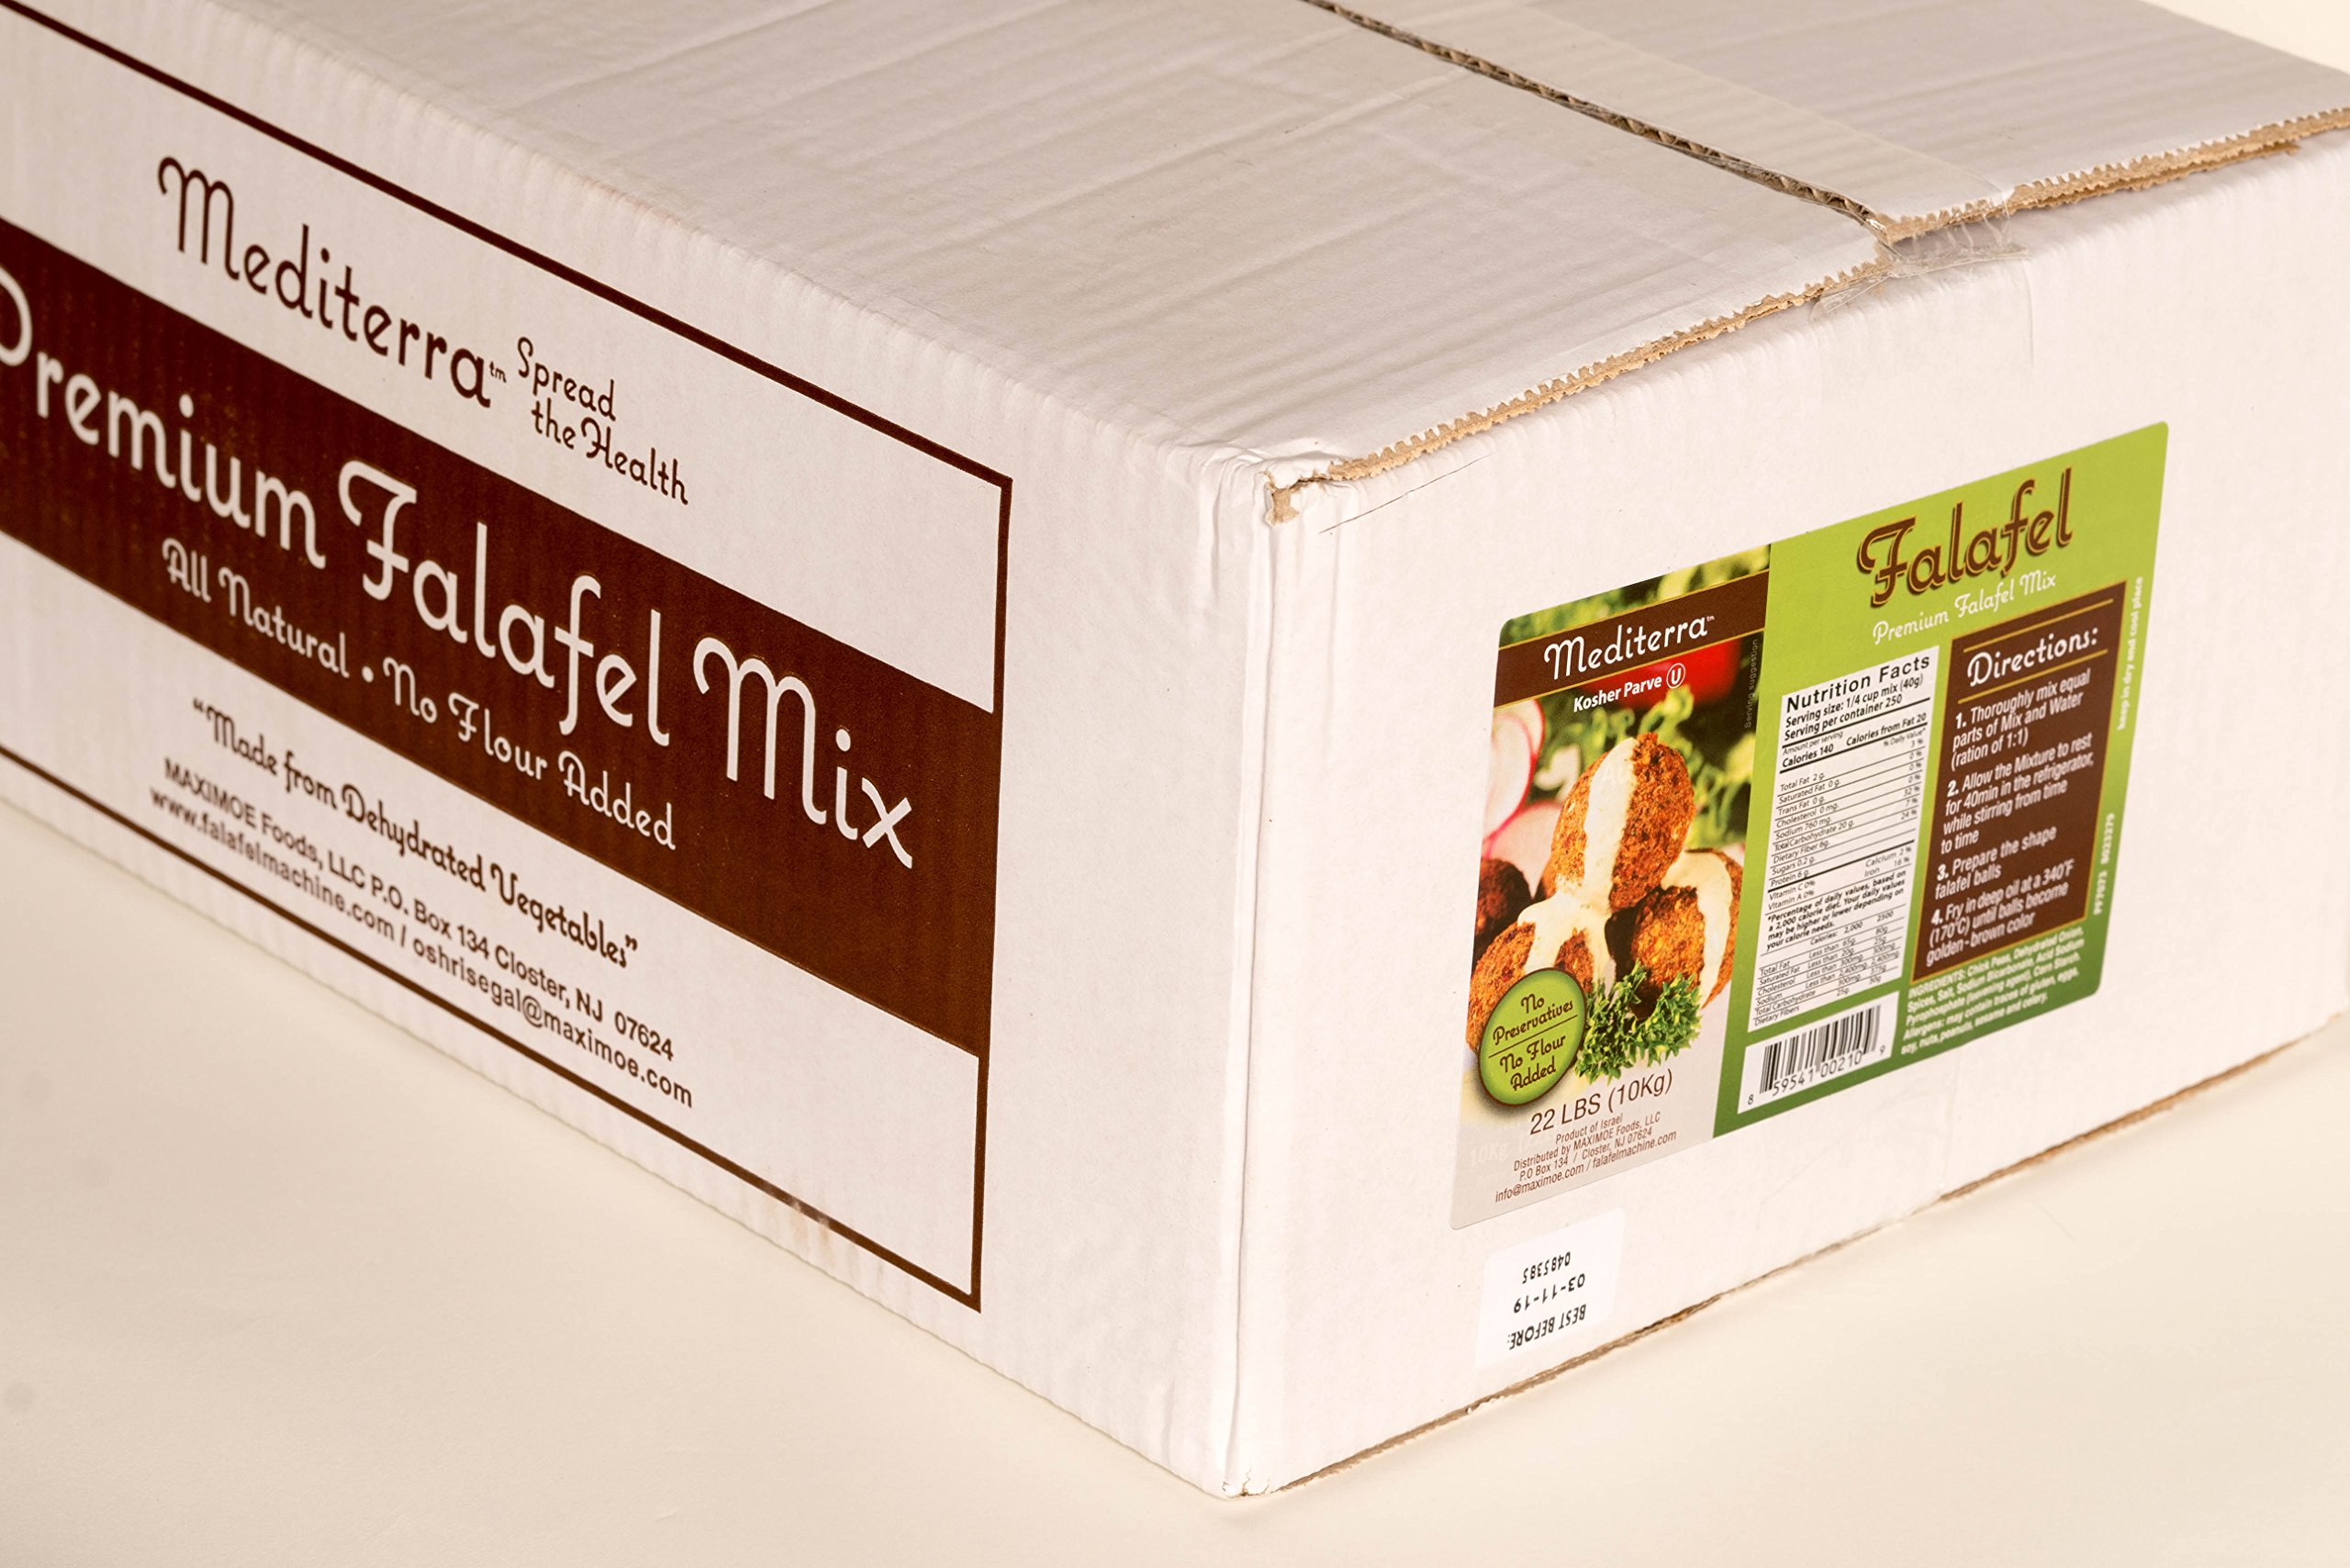 Mediterra Spread The Health Premium Falafel Mix (22 Lbs. yields 1,300 balls) by Mediterra Spread The Health